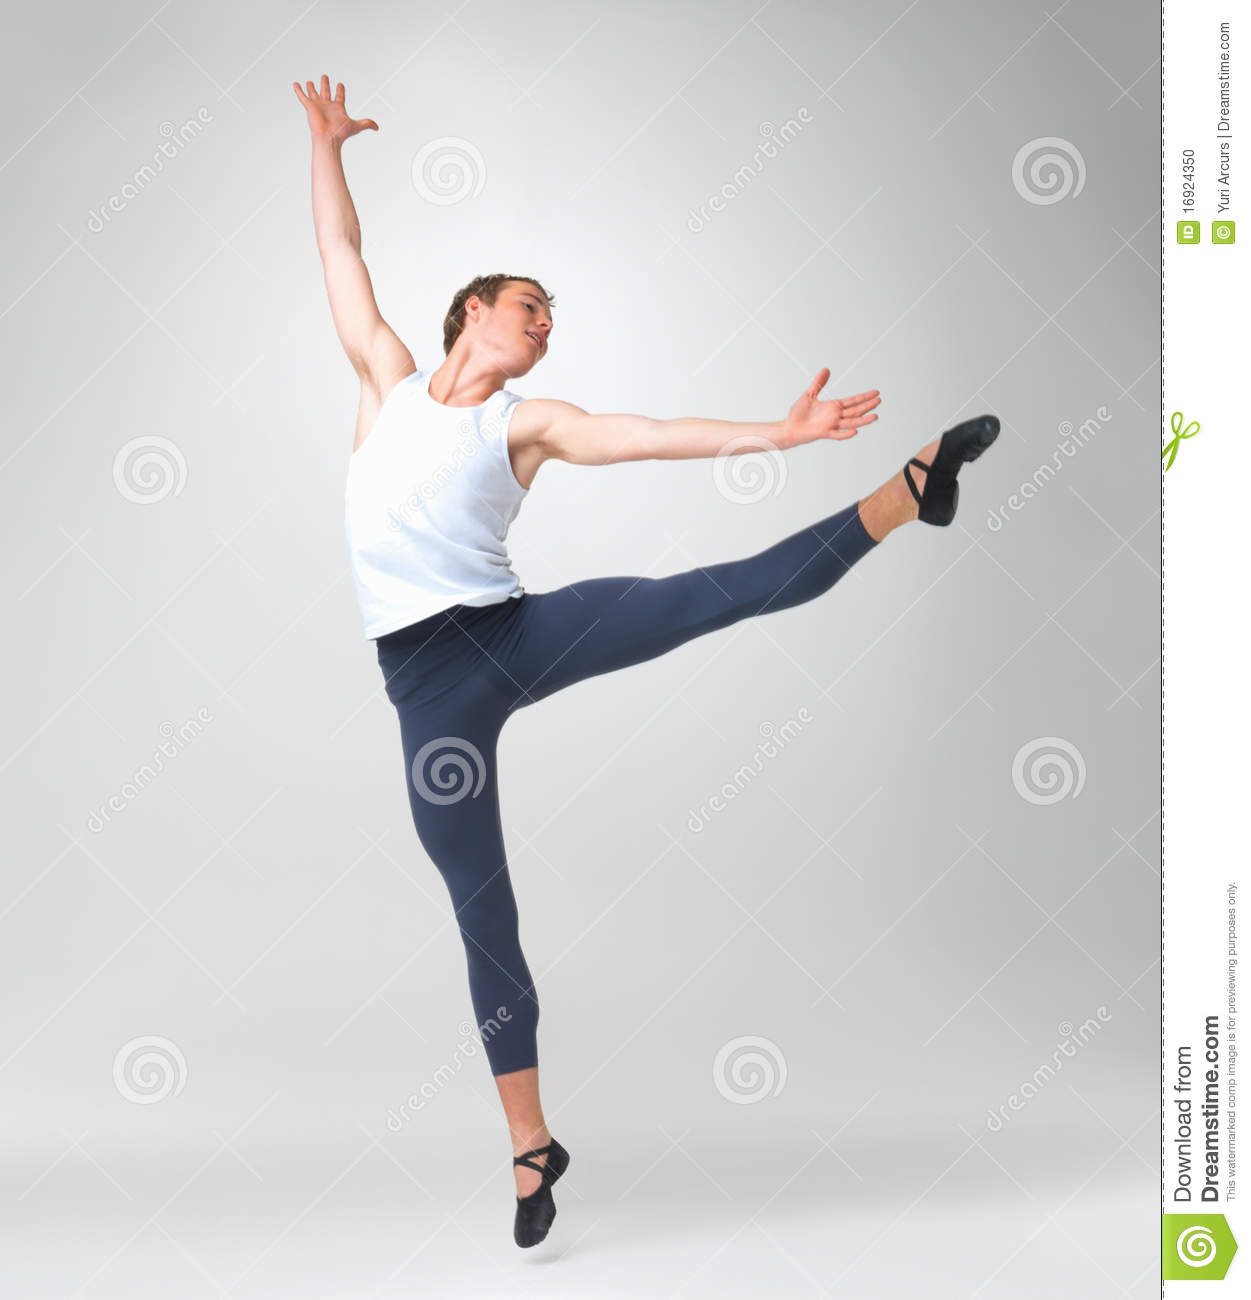 Male Ballet Dancer Performing Stock Photo - Image Of Movement, Classic 16924350-4247